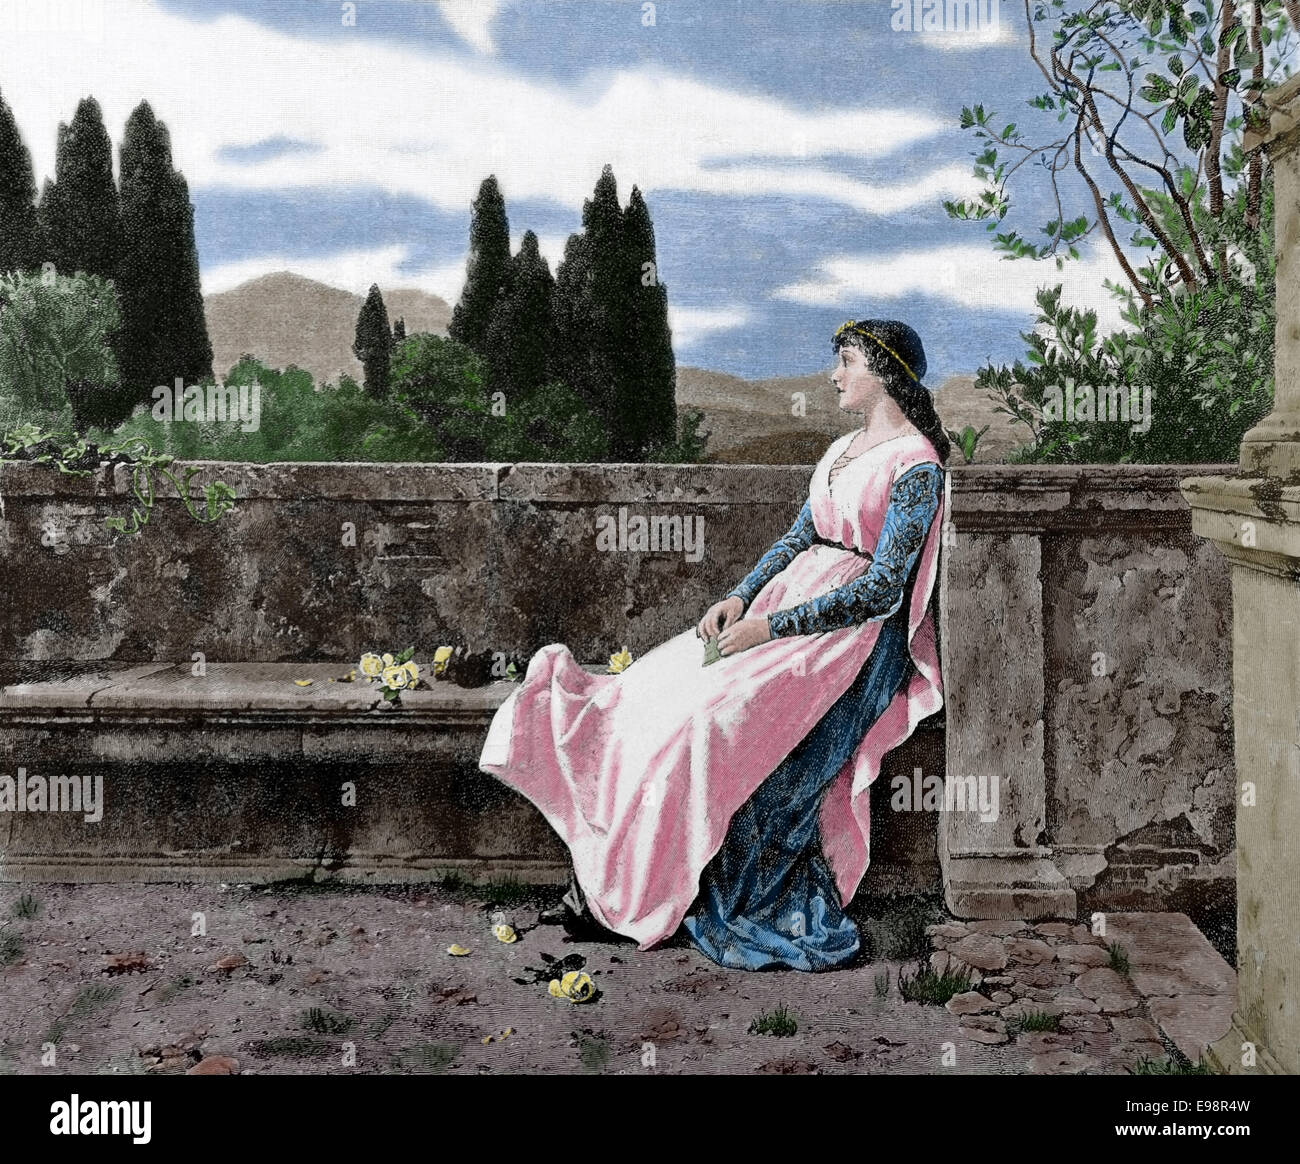 Matilda of Tuscany or Matilda of Canossa (1046-1115). Italian noblewoman. Engraving. Colored. - Stock Image